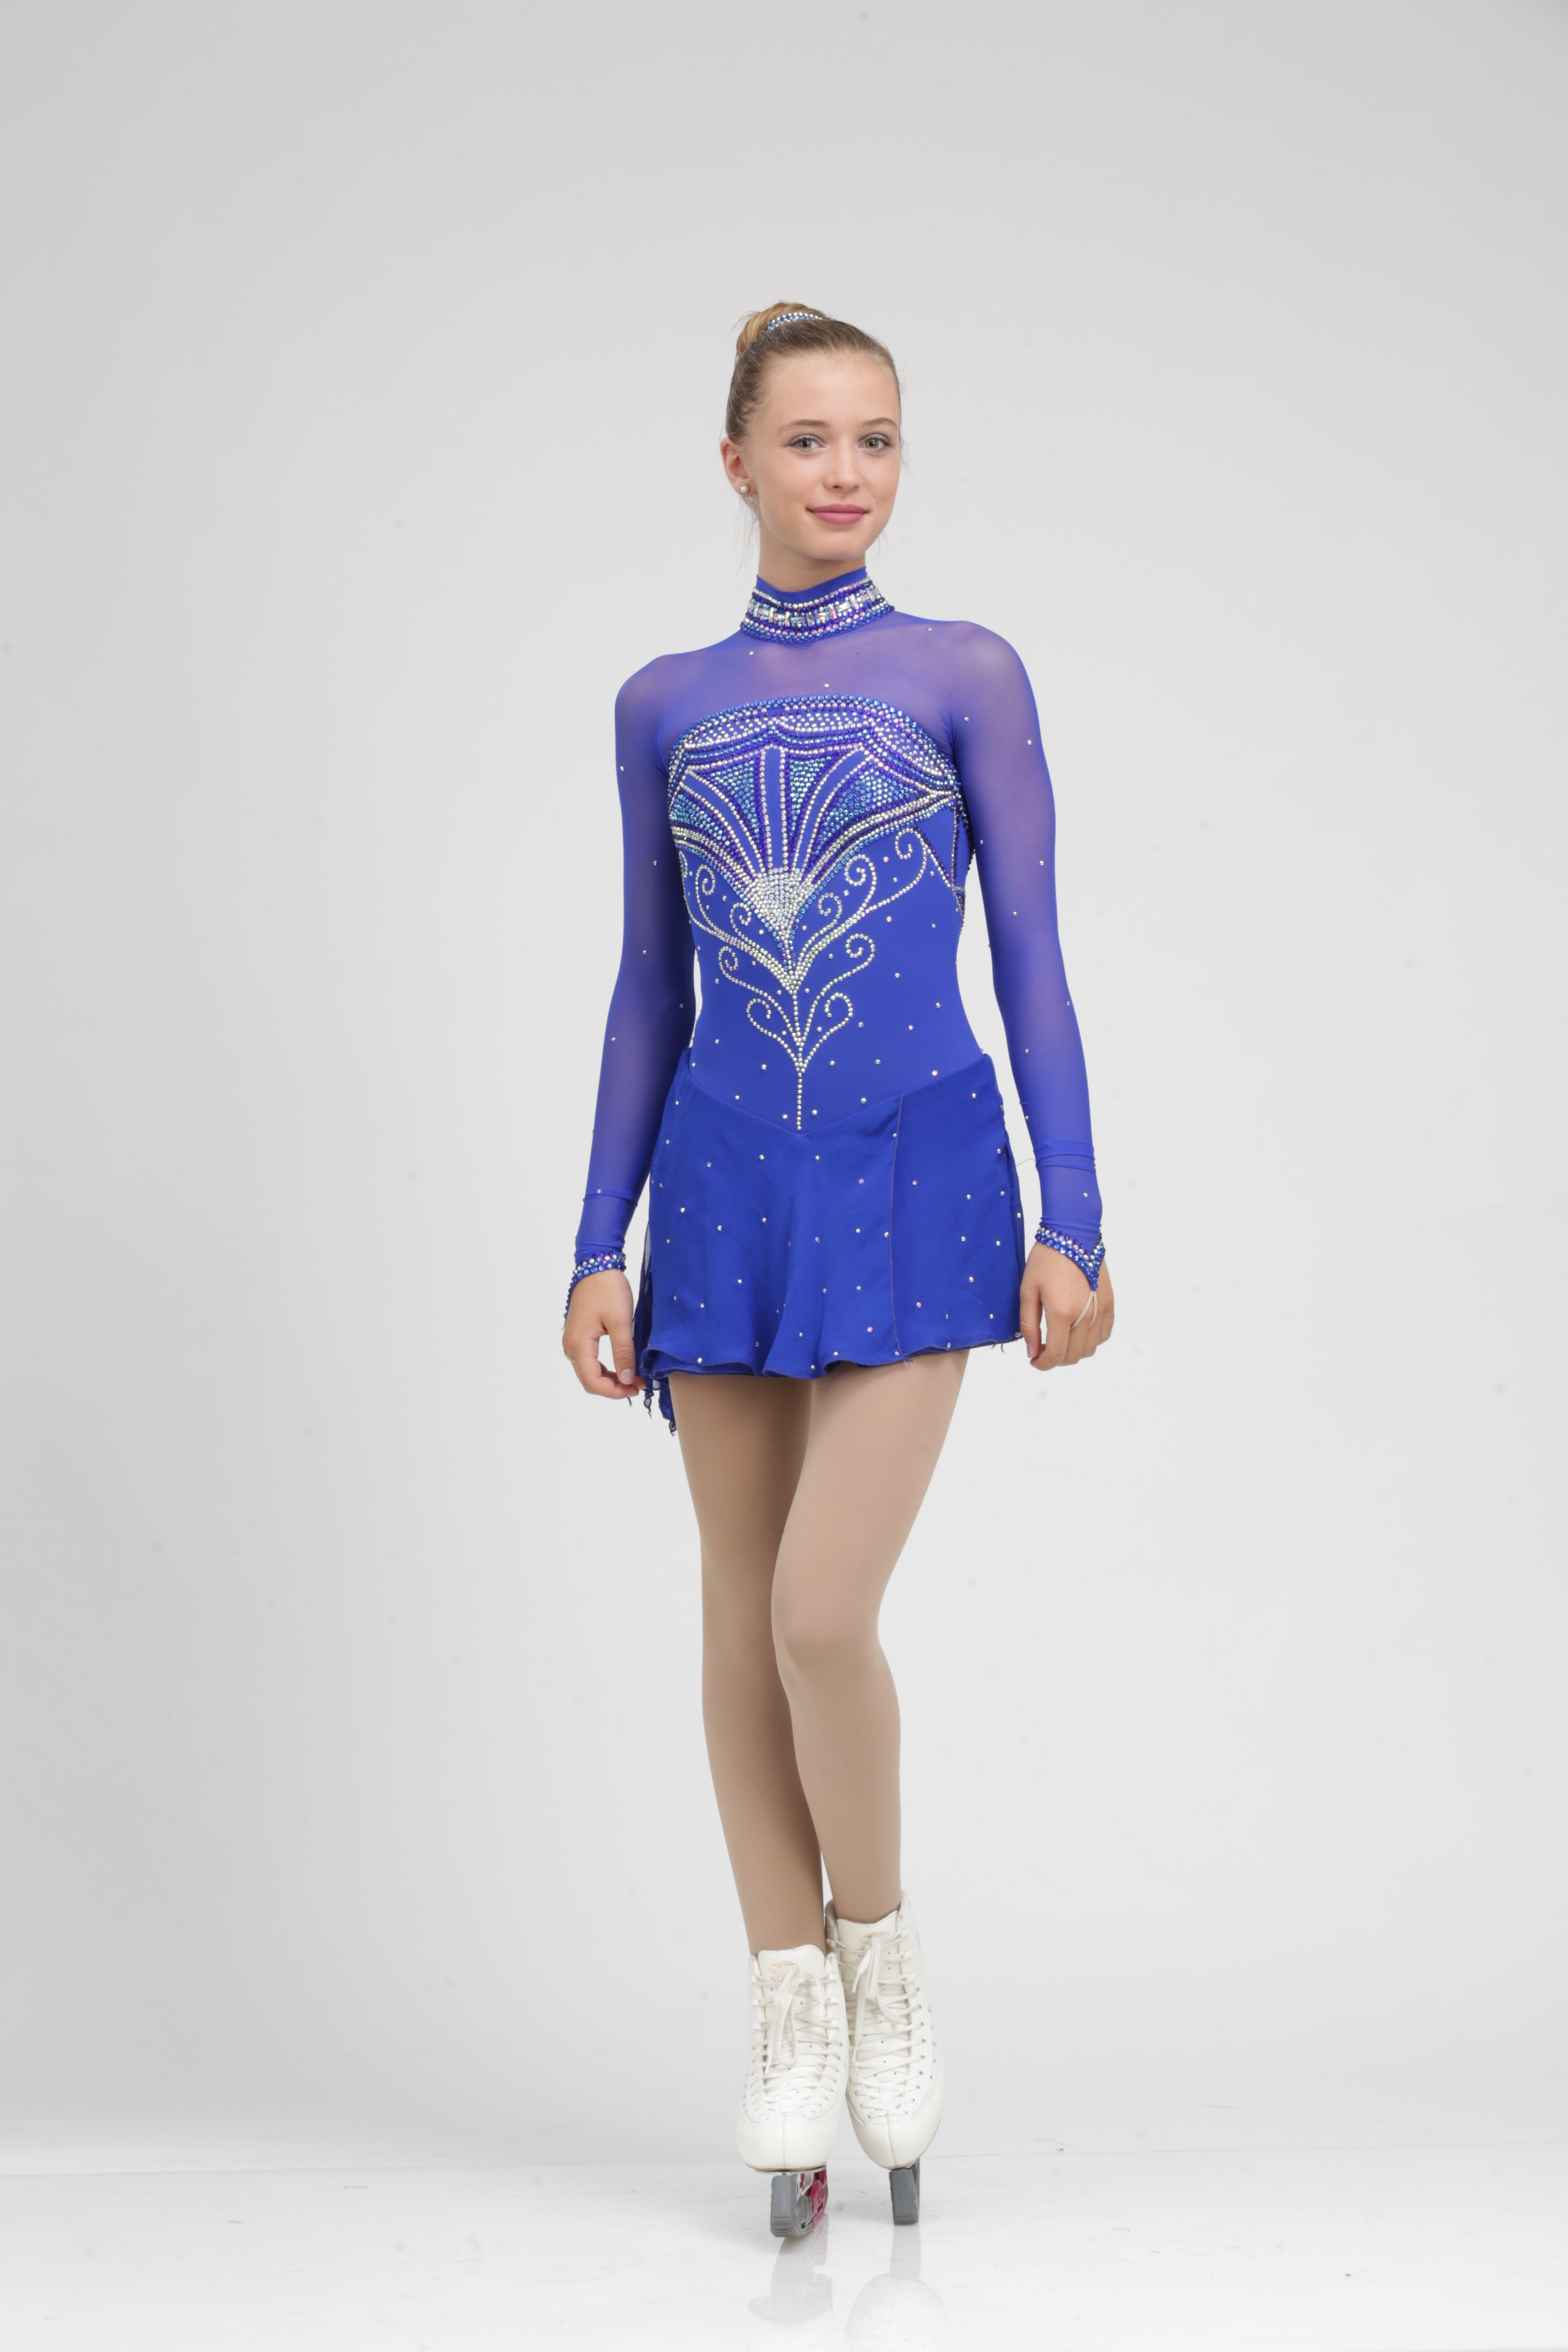 Ice dress skating pictures images